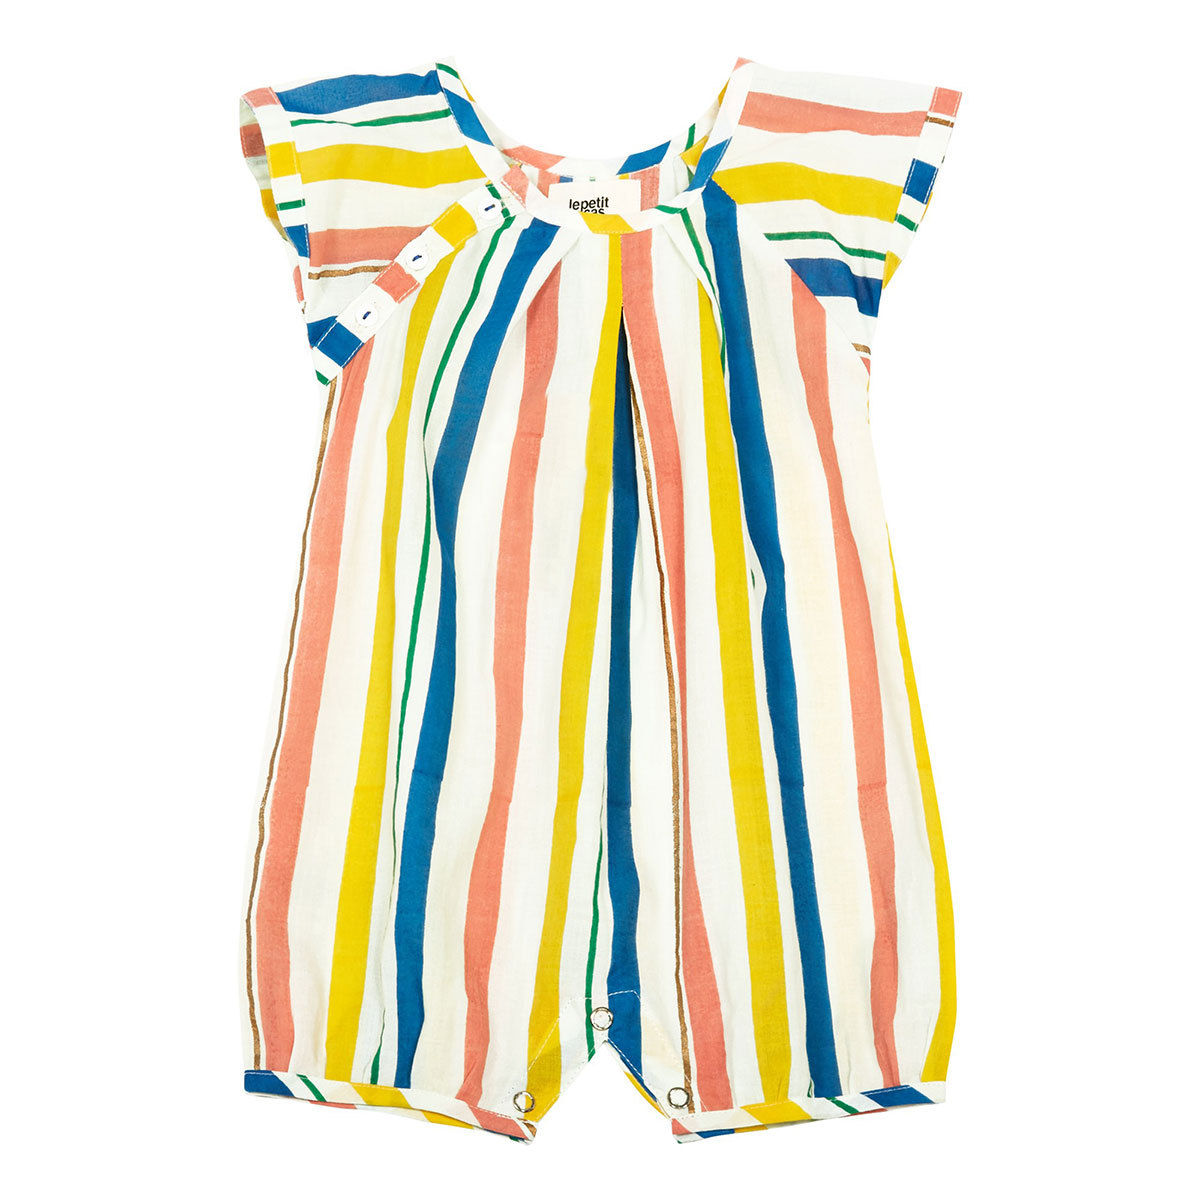 Robe & Combinaison Barboteuse Leopold - Multico Stripes - 9/12 Mois Barboteuse Leopold - Multico Stripes - 9/12 Mois